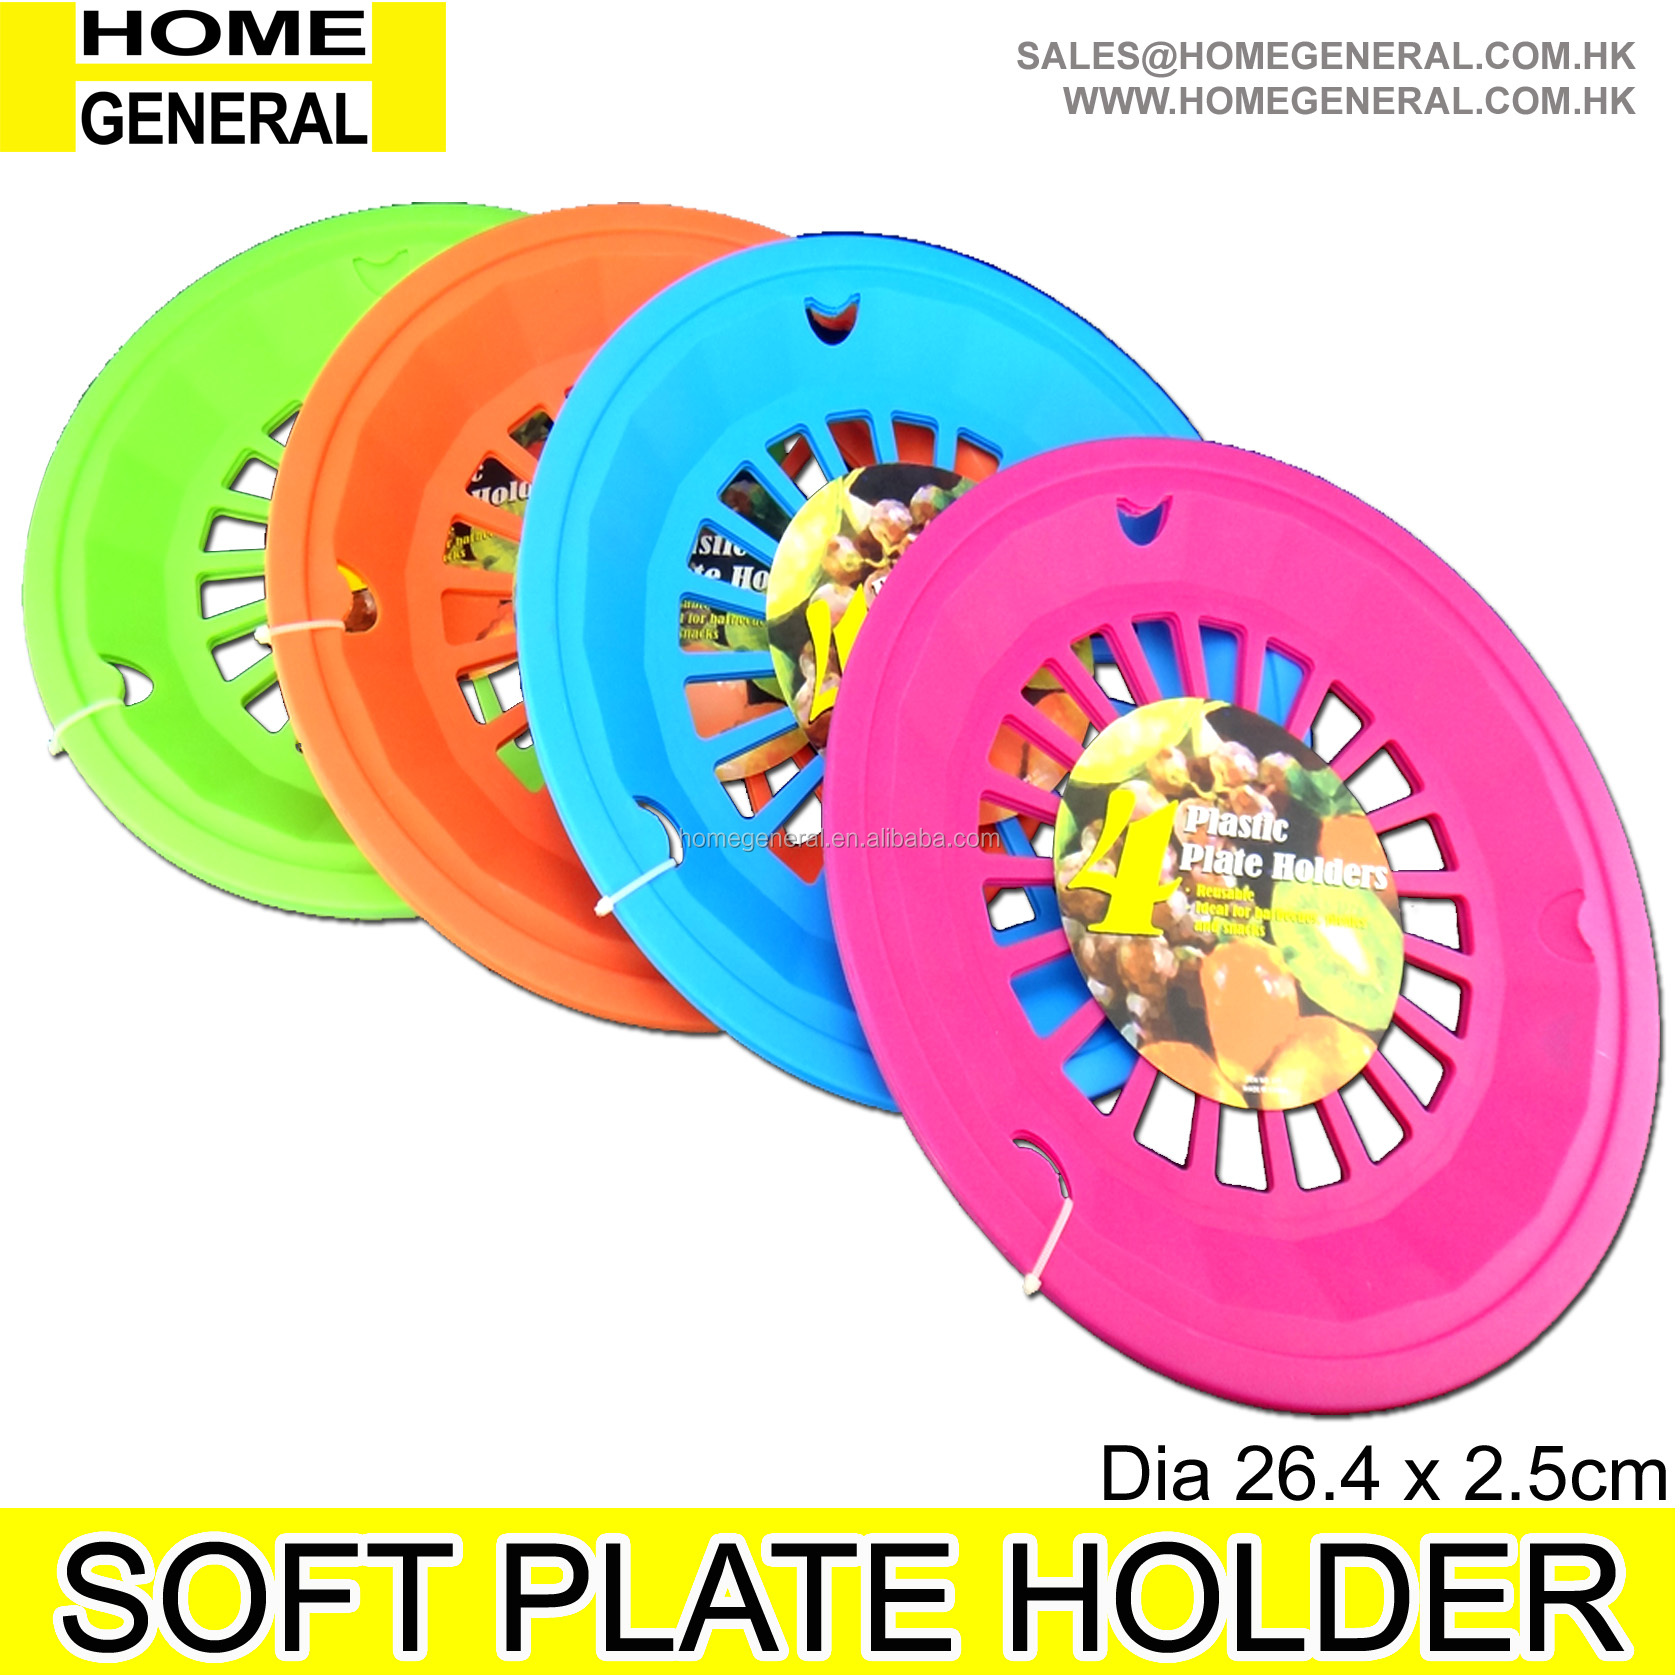 PARTY GENERAL 4PCS SET PLASTIC PLATE HOLDER PARTY PLATE HOLDER